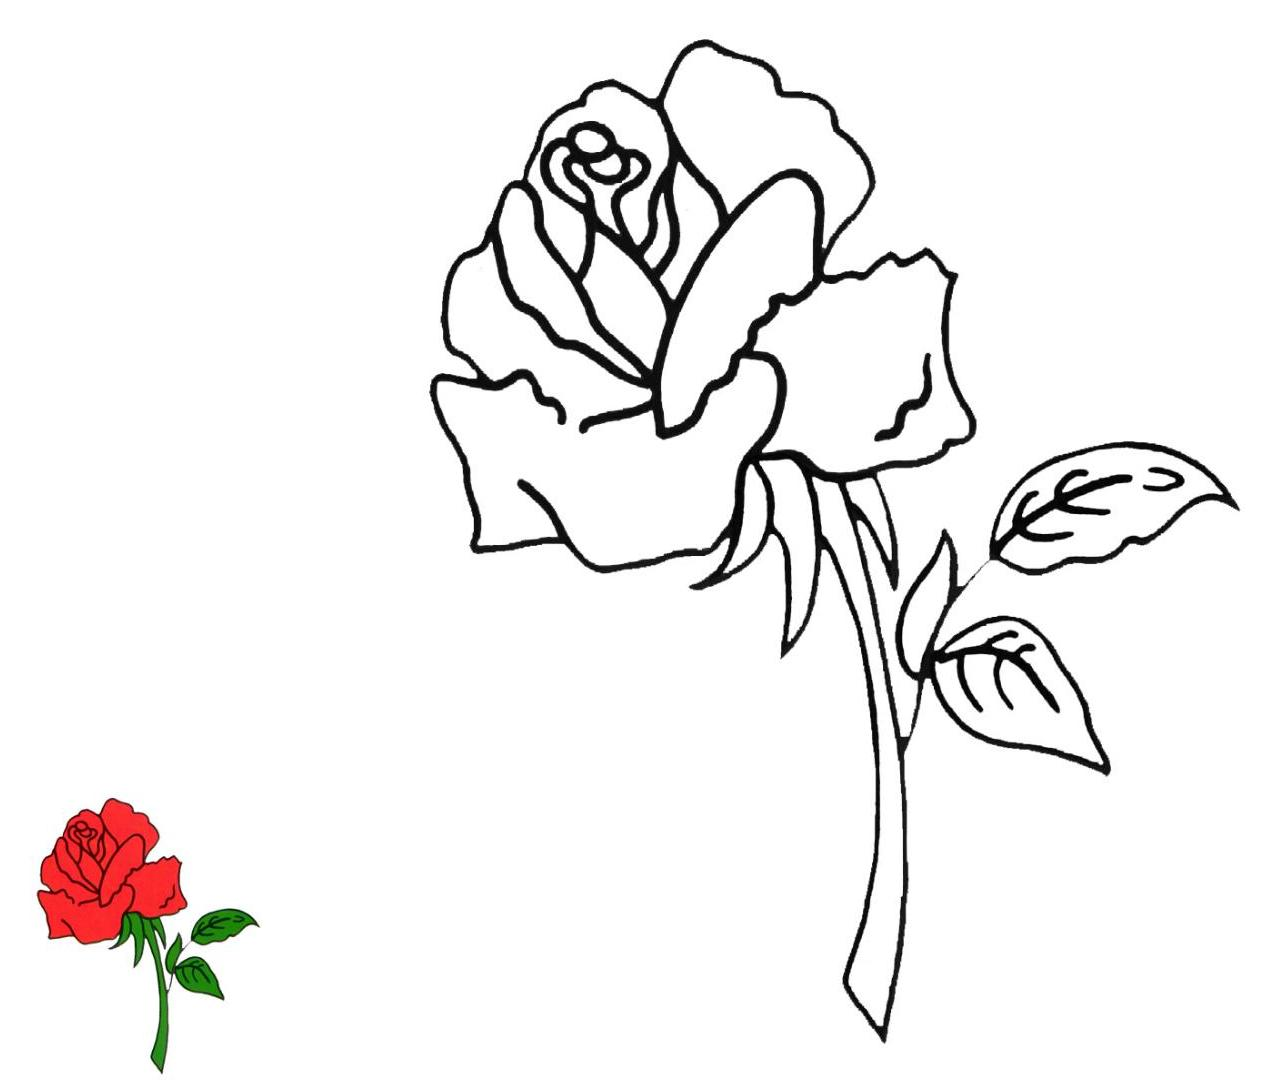 Peaceful image with roses templates printable